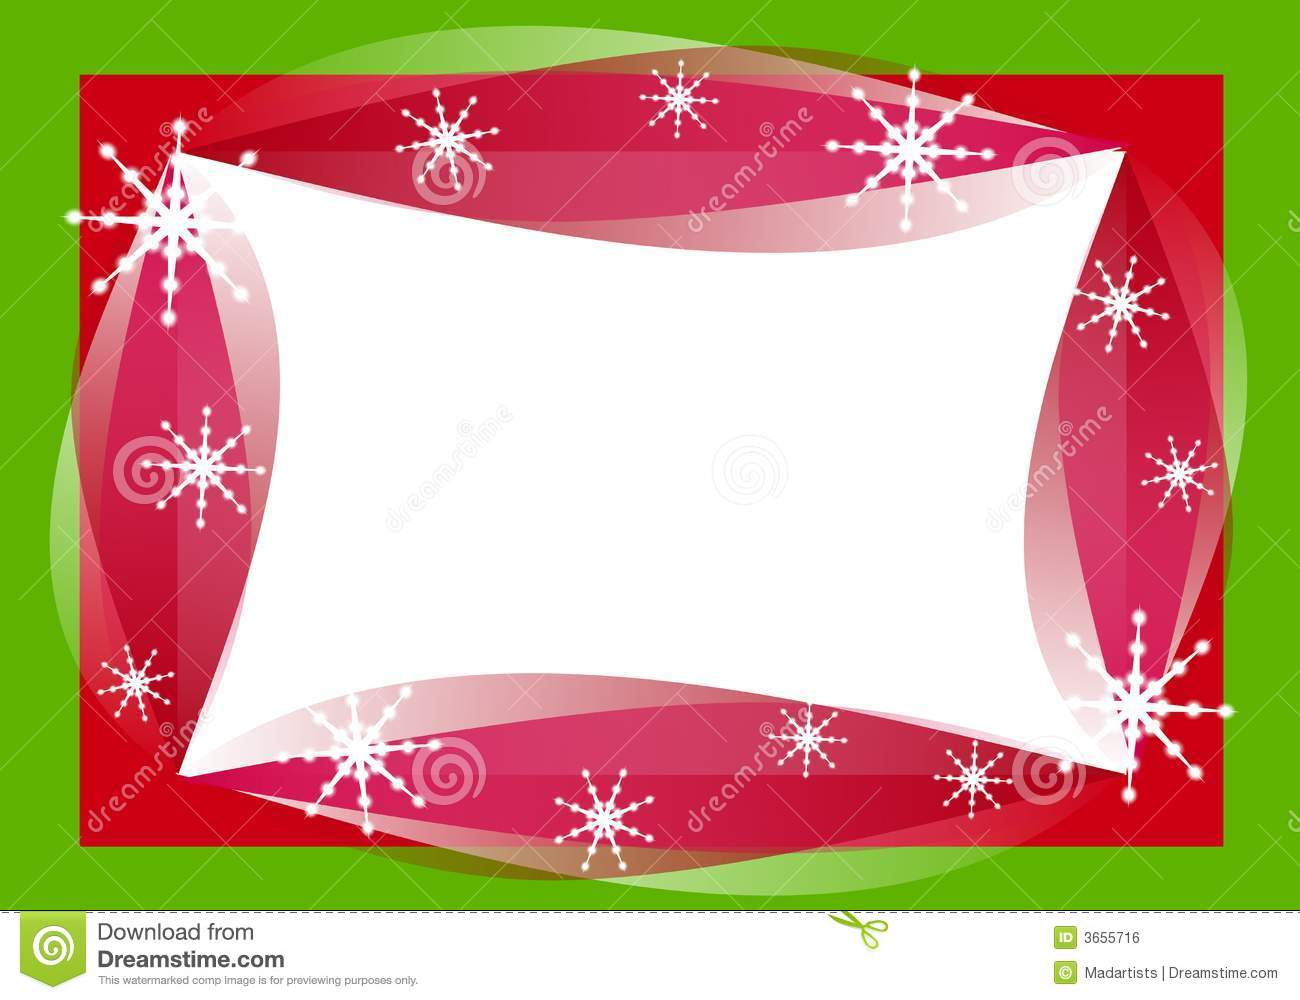 Retro Christmas Border Frame Royalty Free Stock Image - Image: 3655716